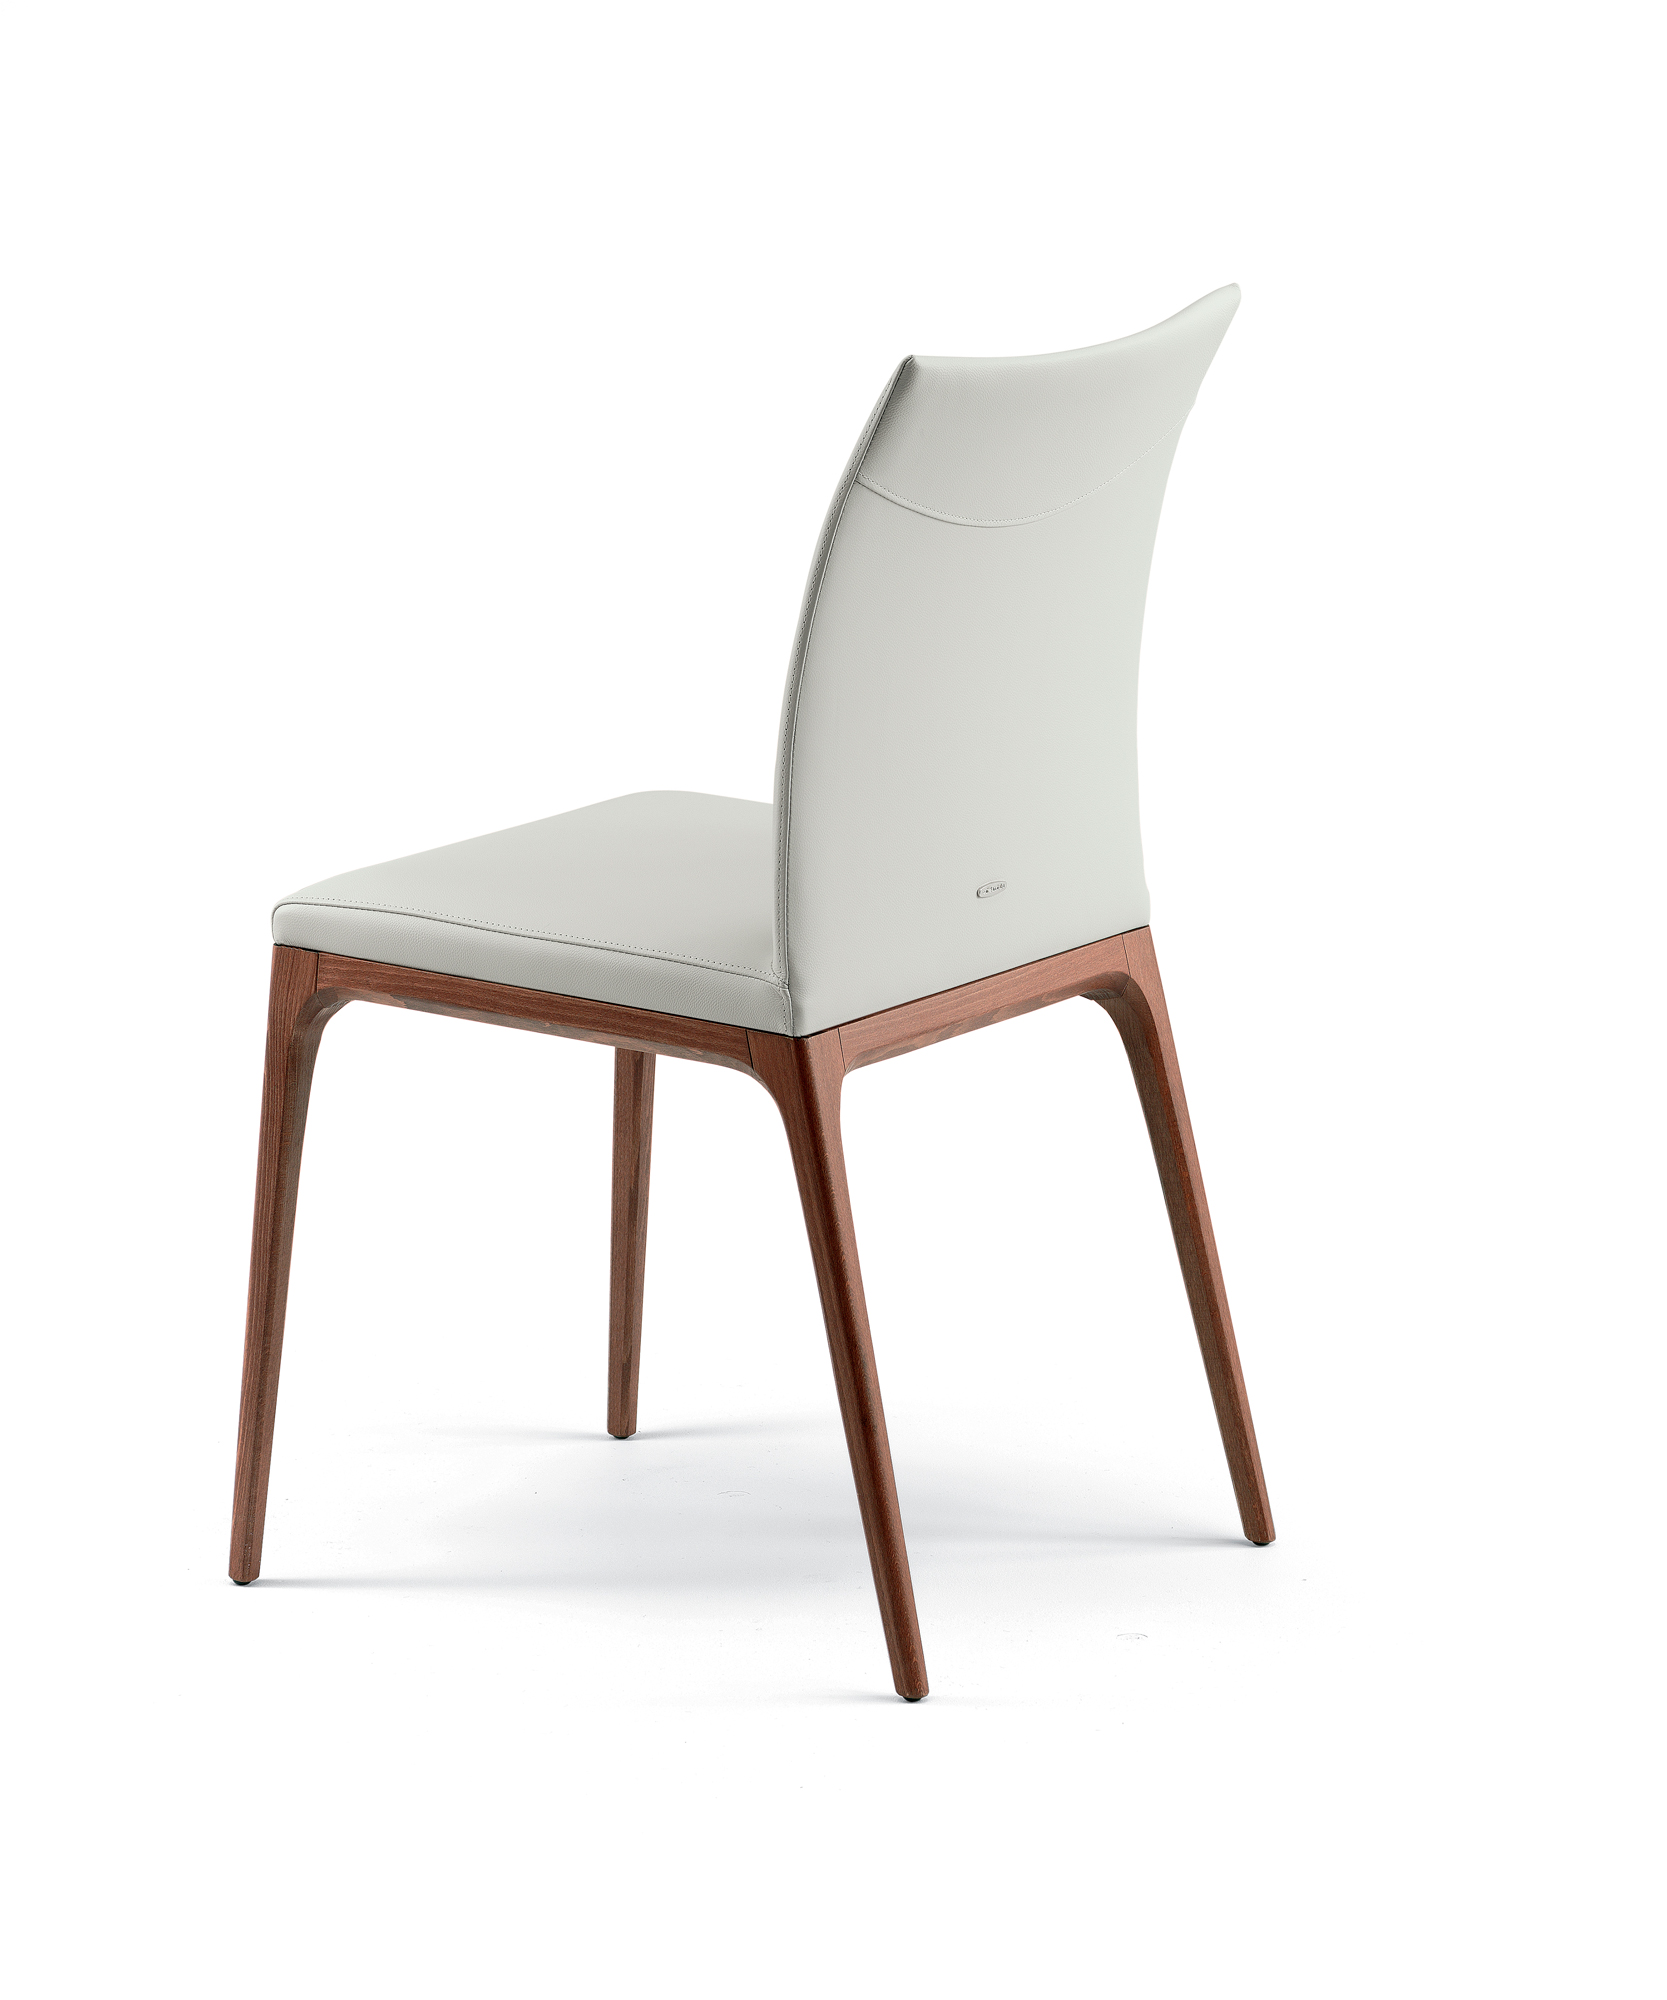 Luxury italian arcadia chair italian designer luxury for Contemporary furniture chairs